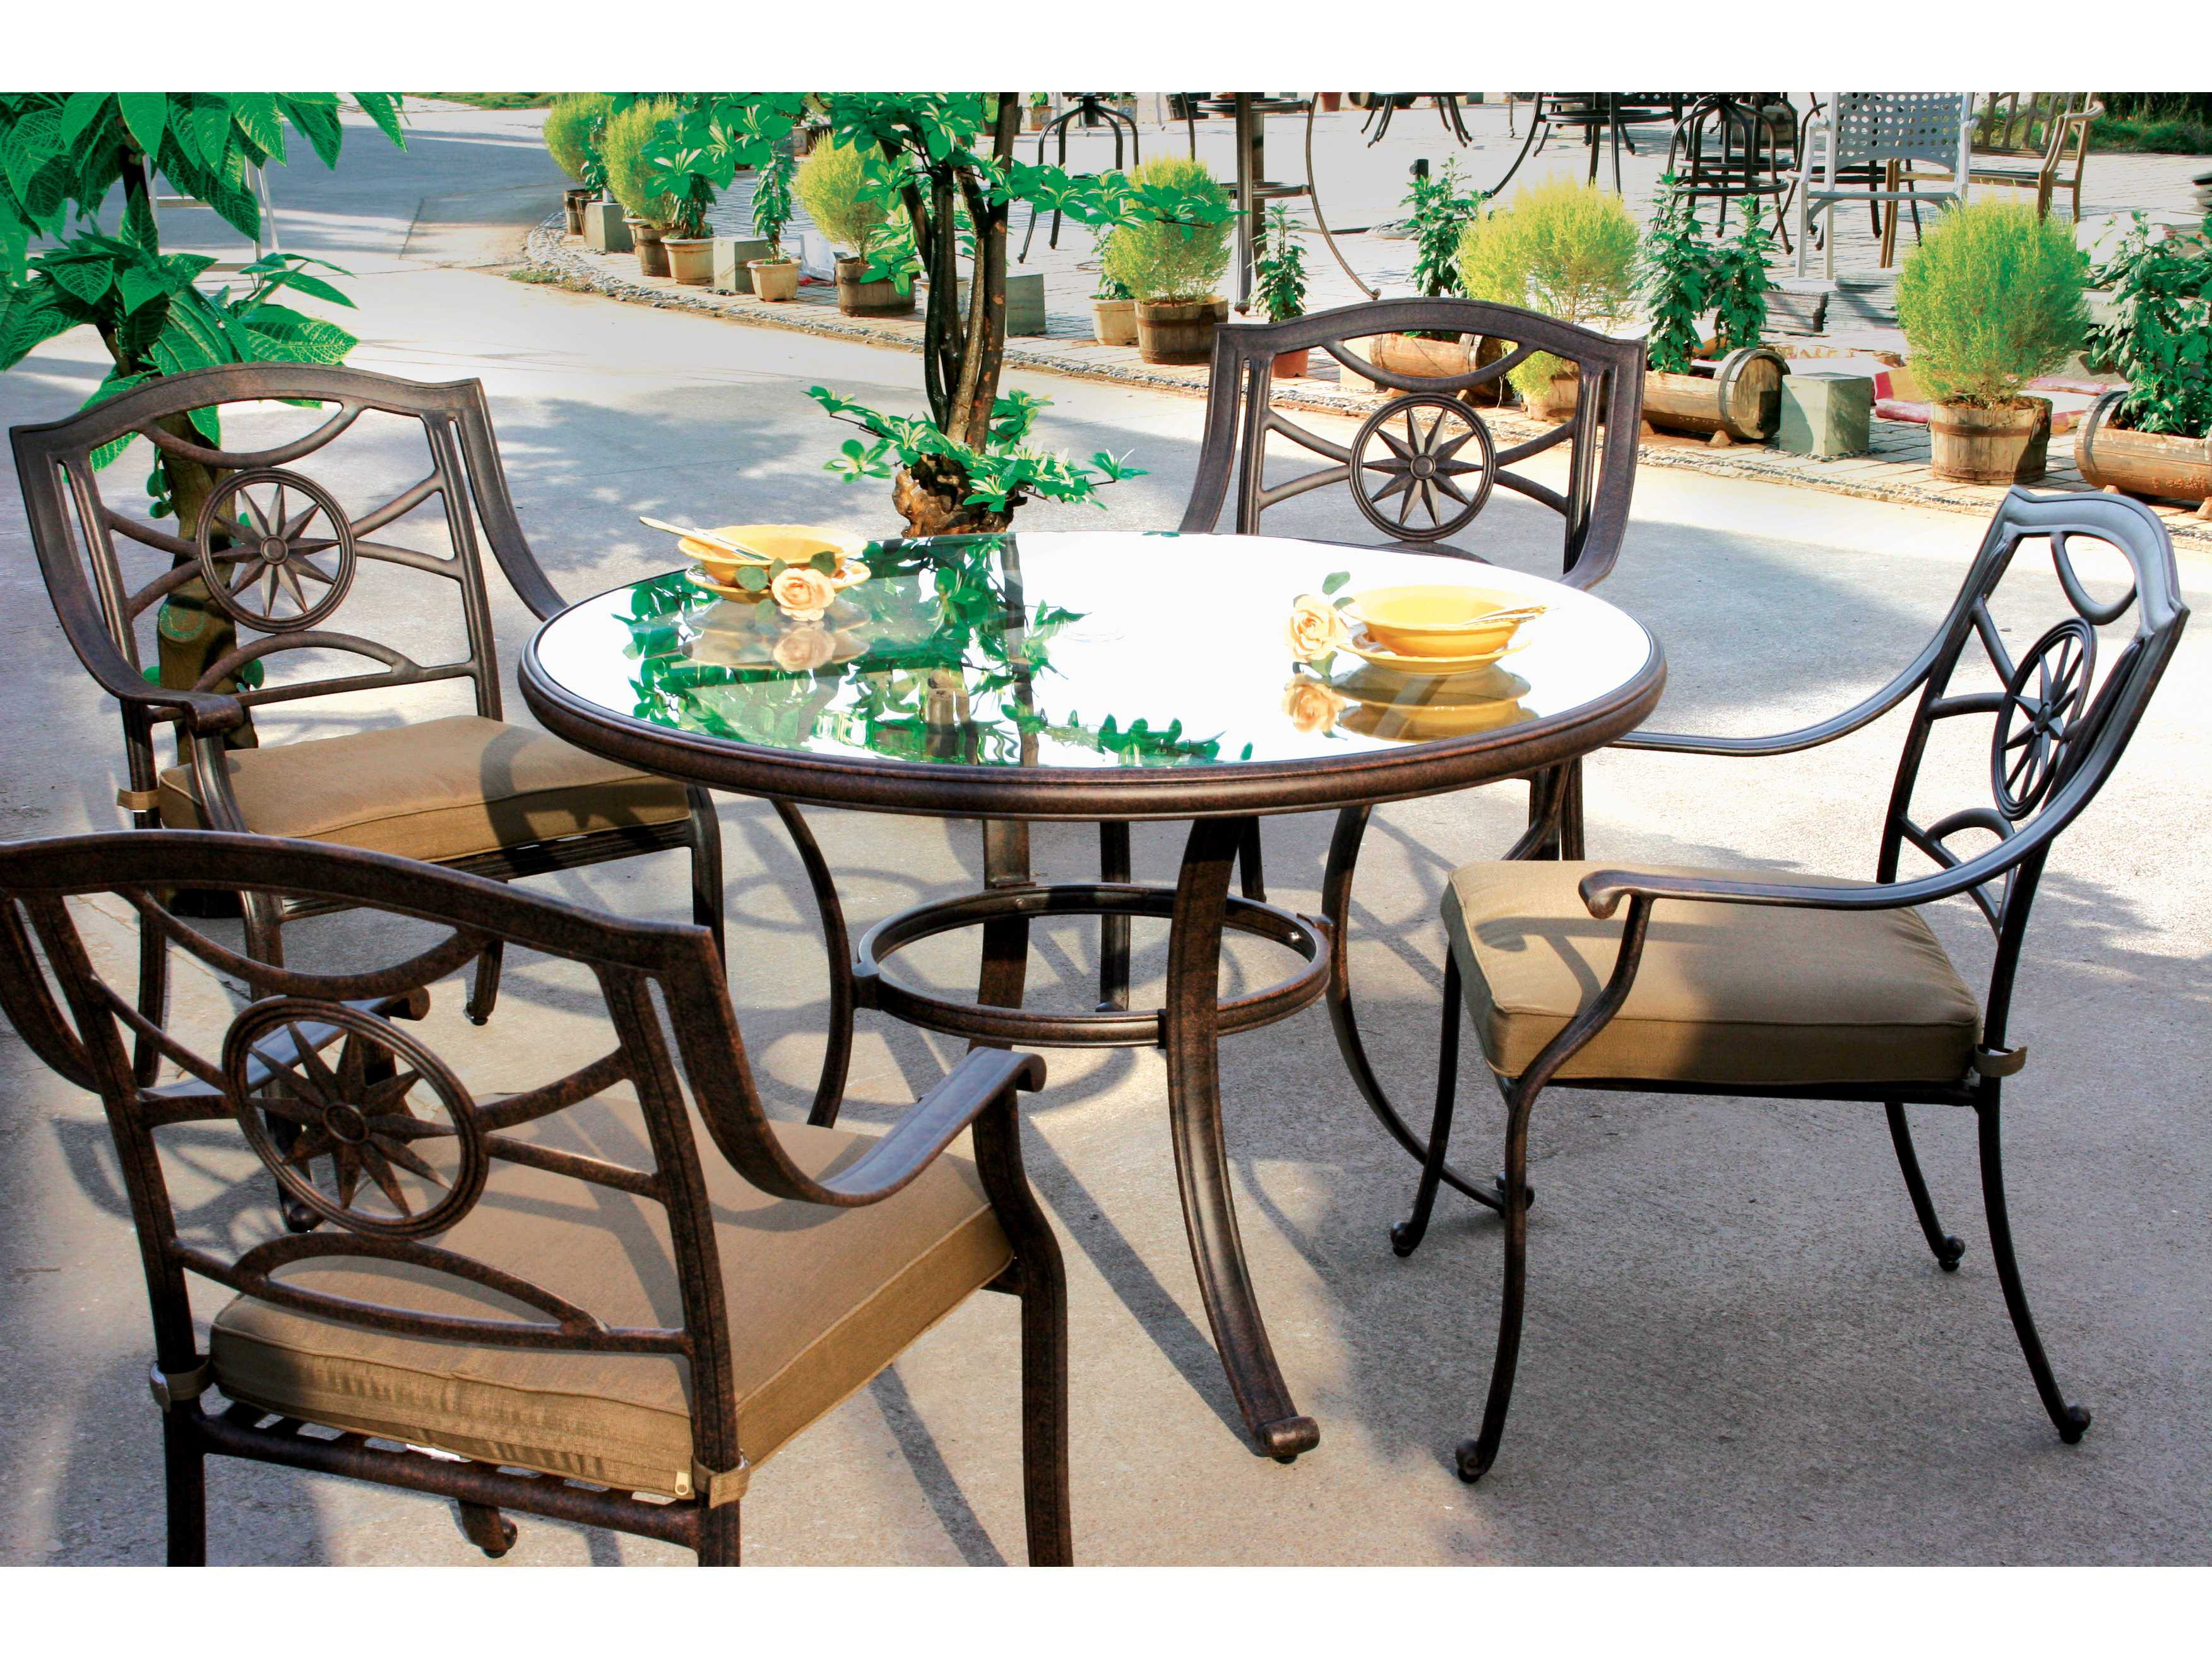 Outdoor round dining table - View